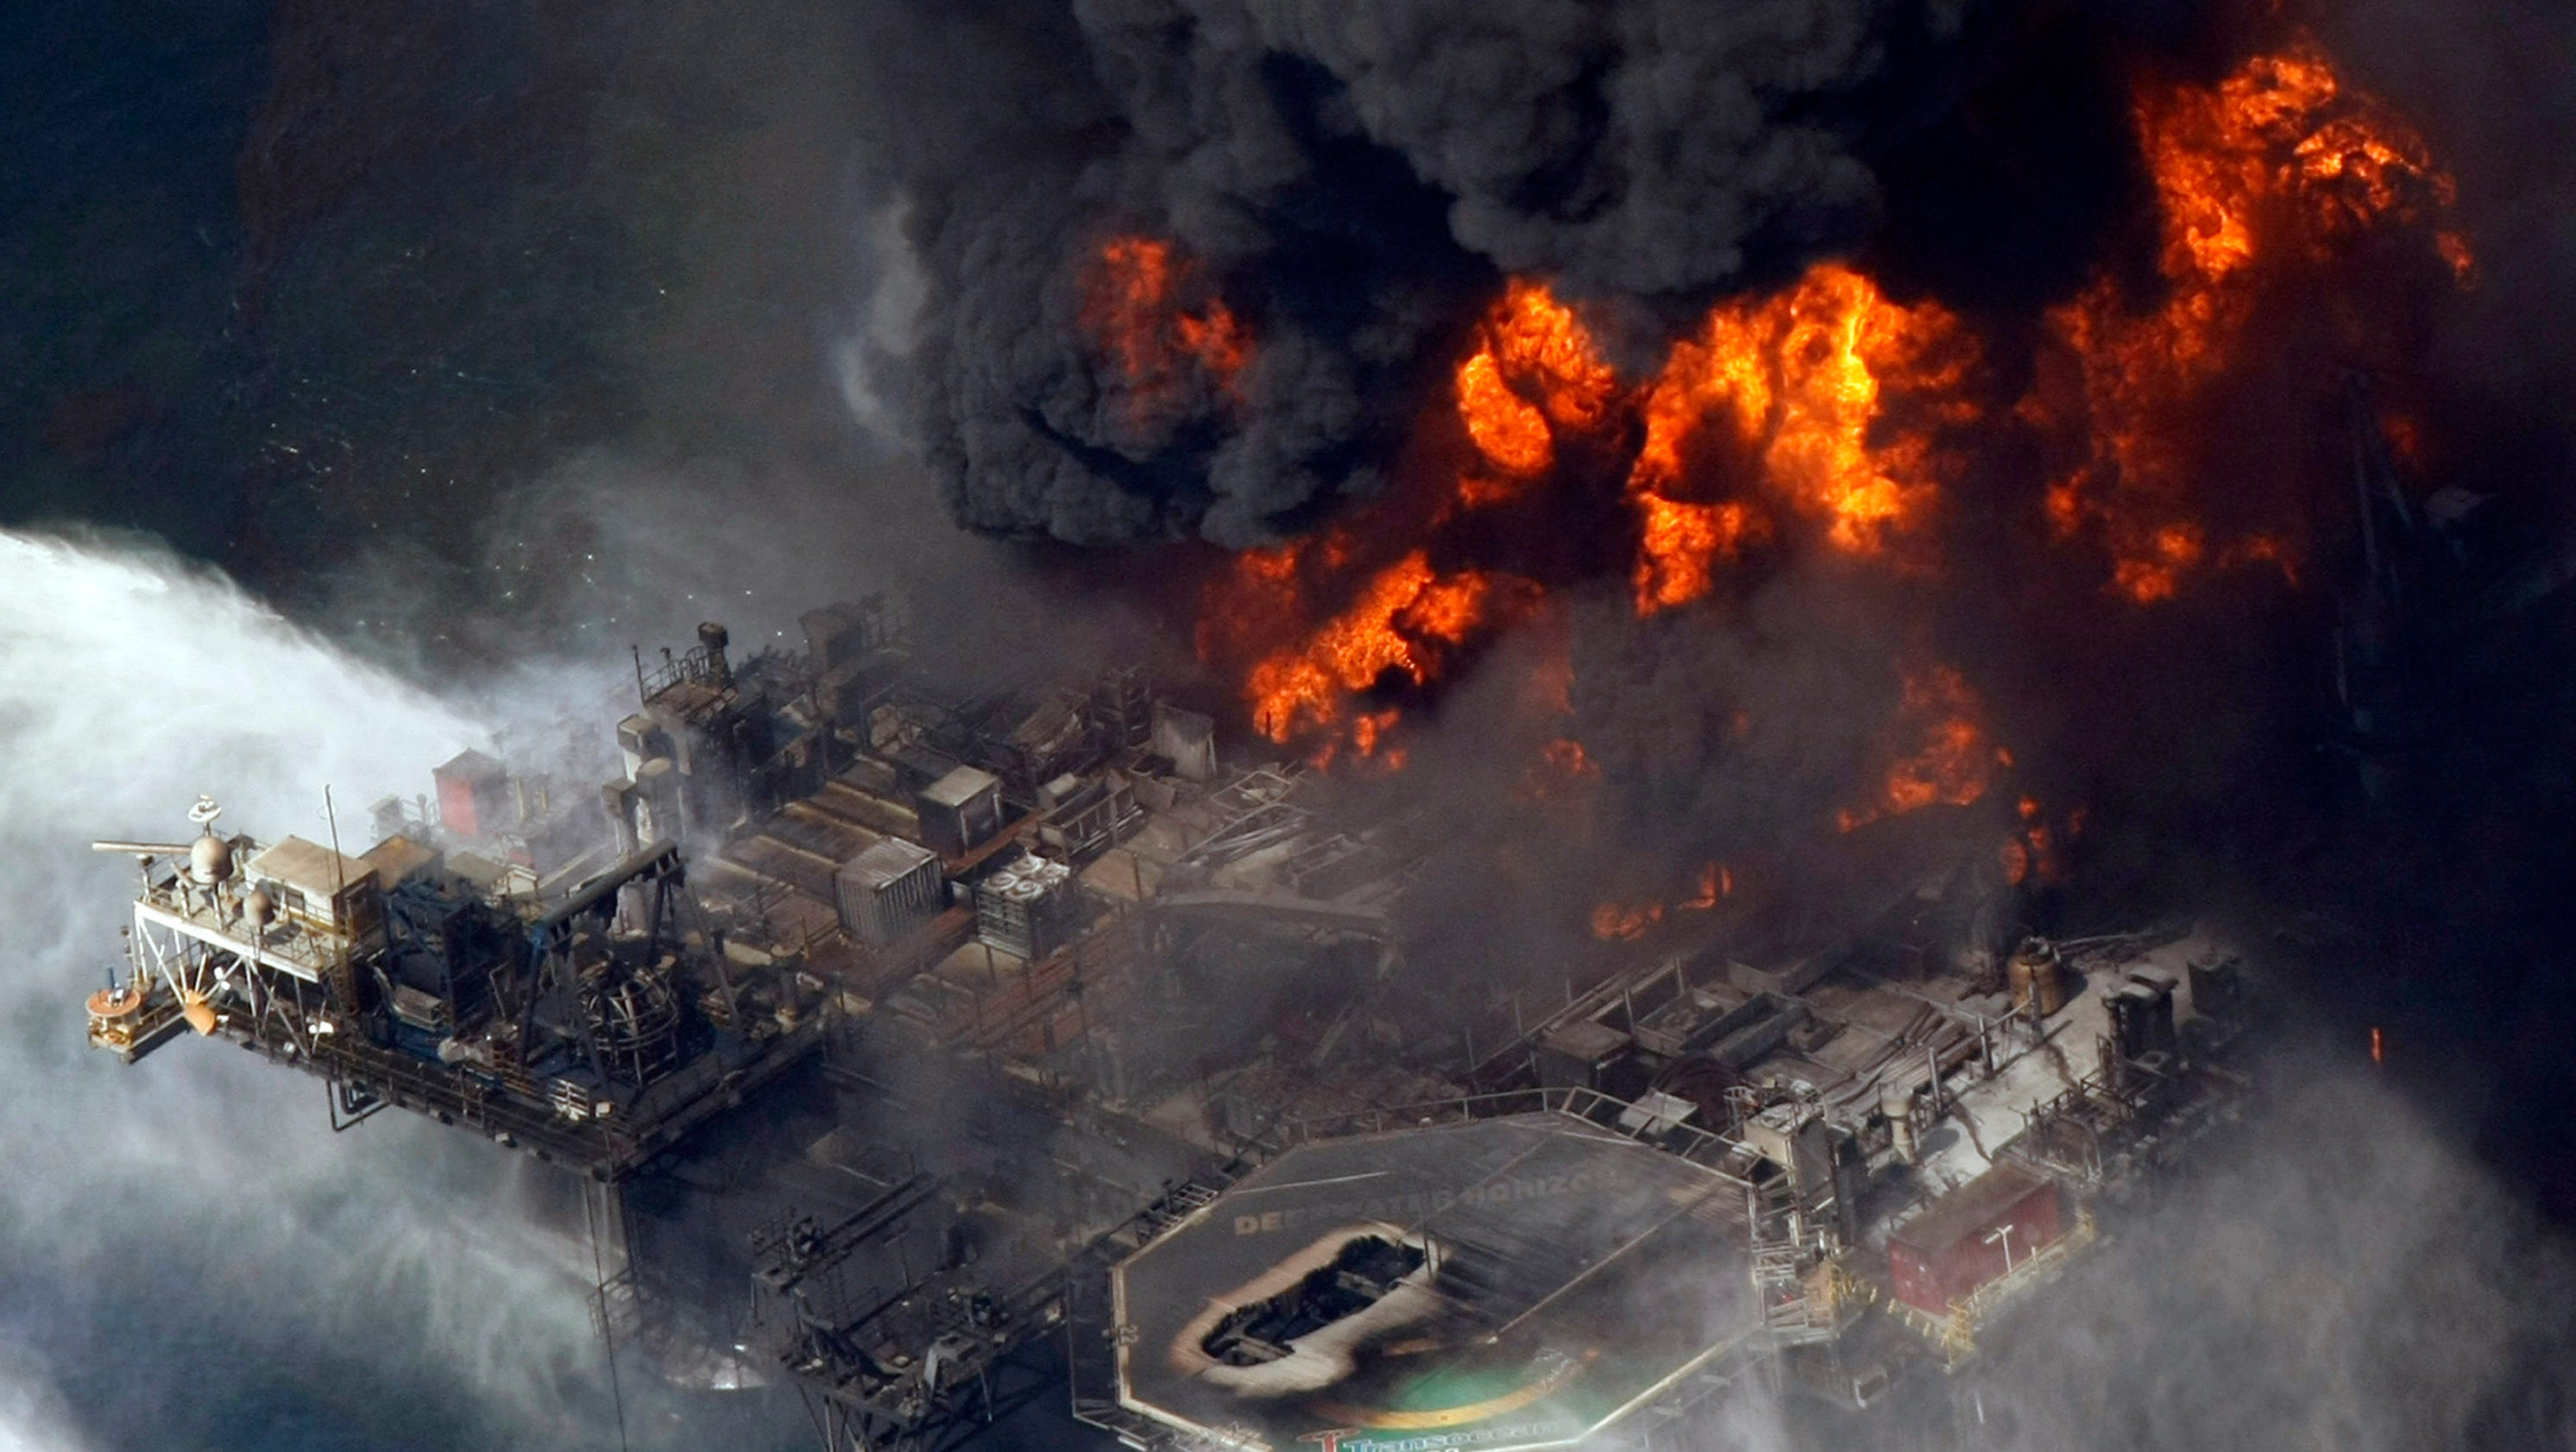 corporate social responsibility bp in the oil spill in the gulf of mexico The bp oil spill in the gulf of mexico essay the bp oil spill occurred near as well as its professed dedication to corporate social responsibility and the.